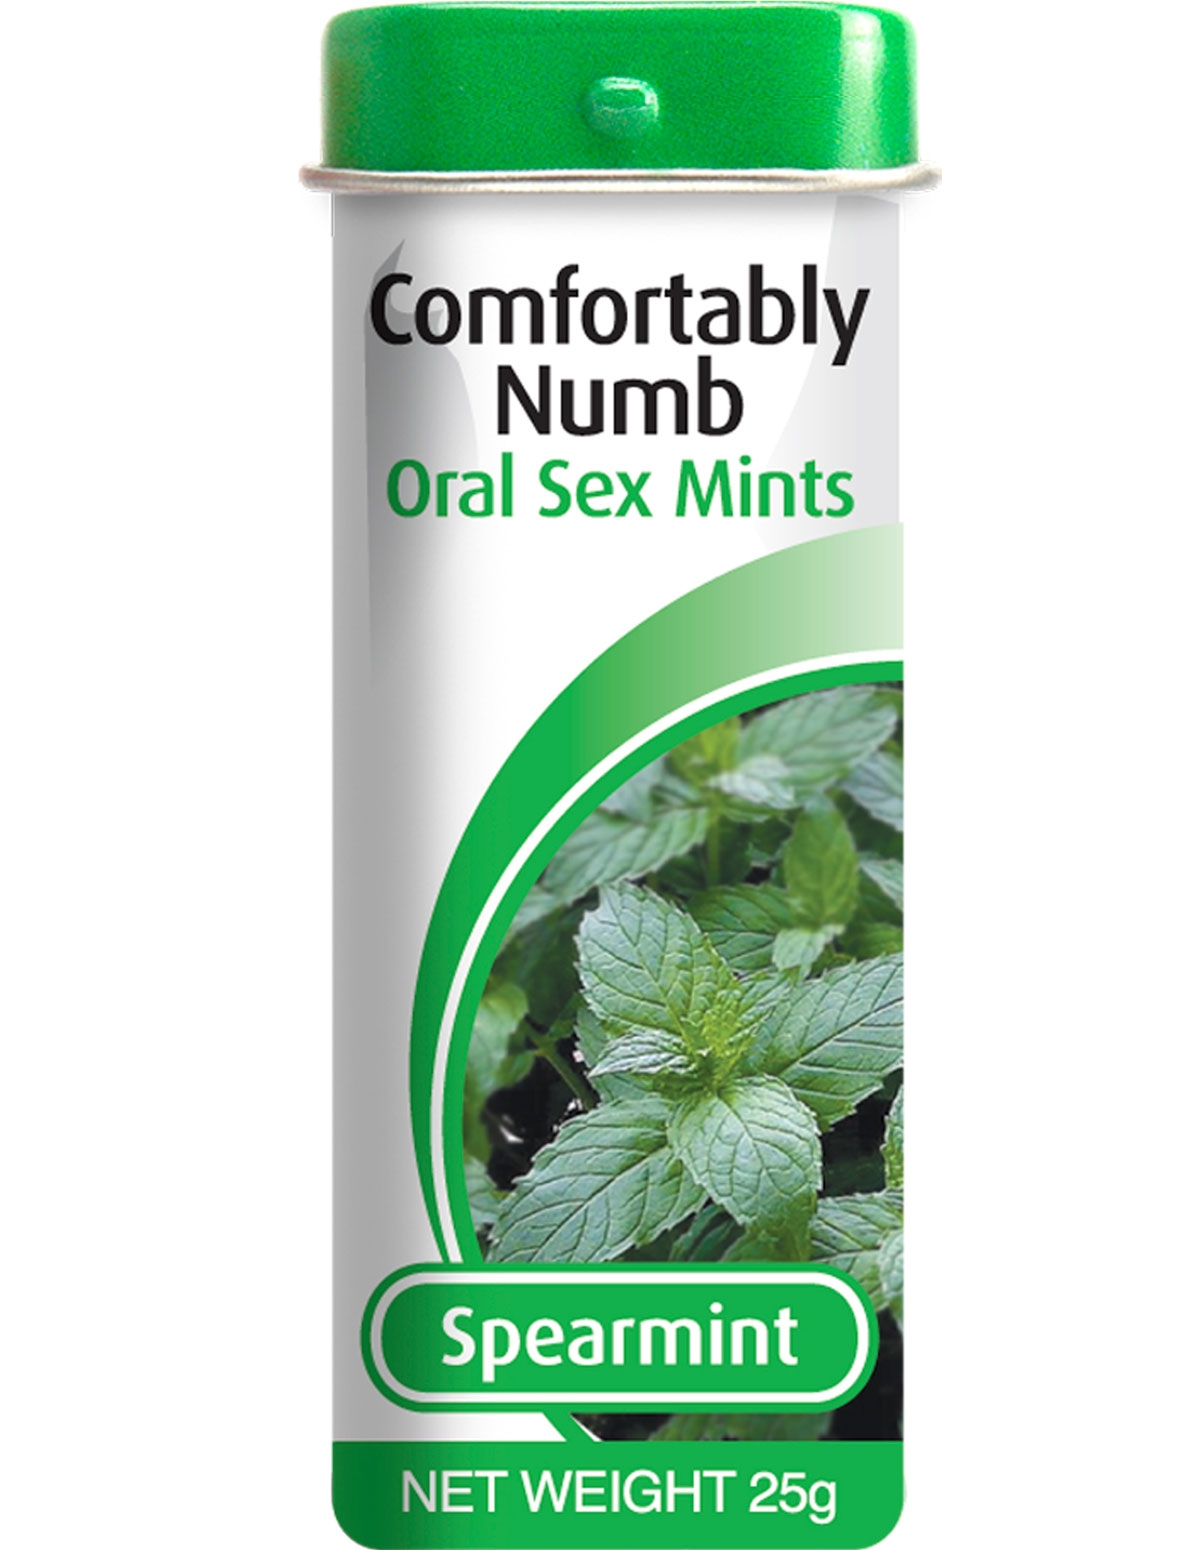 Comfortably Numb Oral Sex Mints